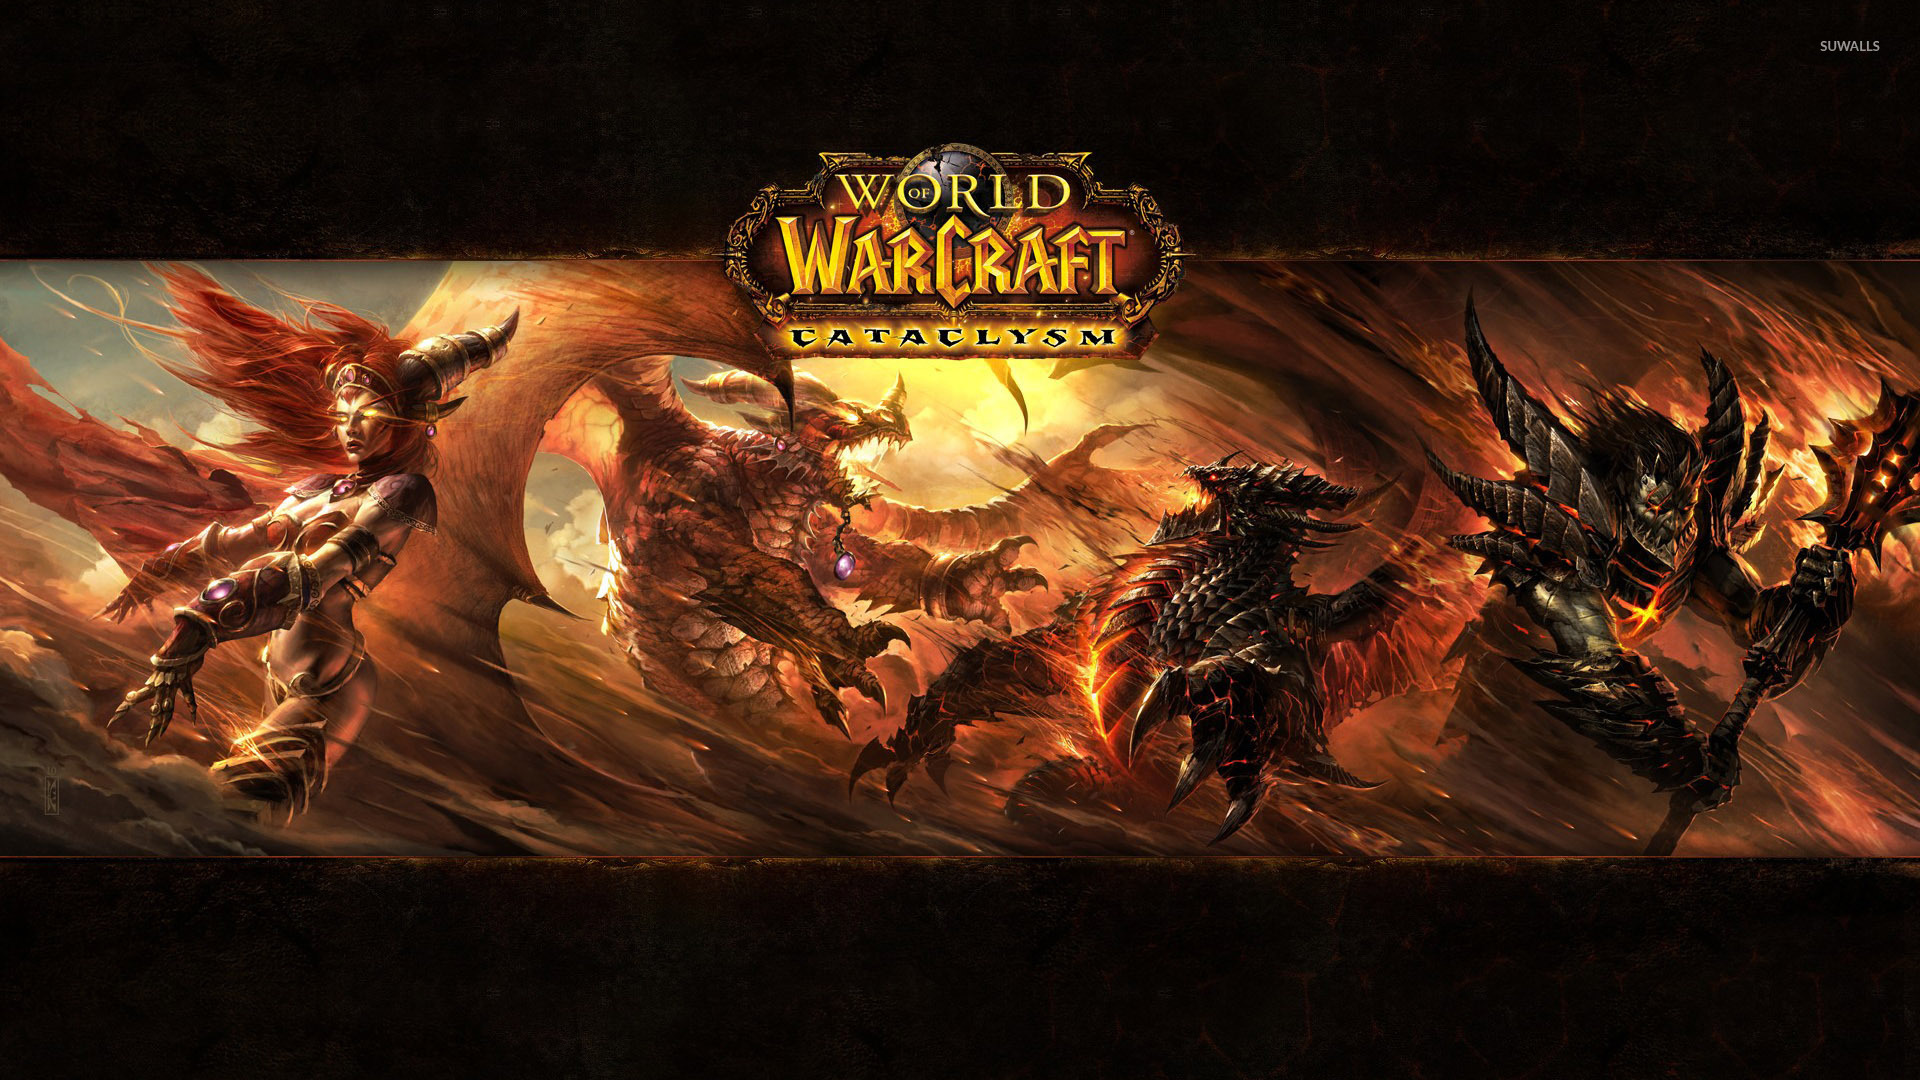 World Of Warcraft Cataclysm Wallpaper Game Wallpapers